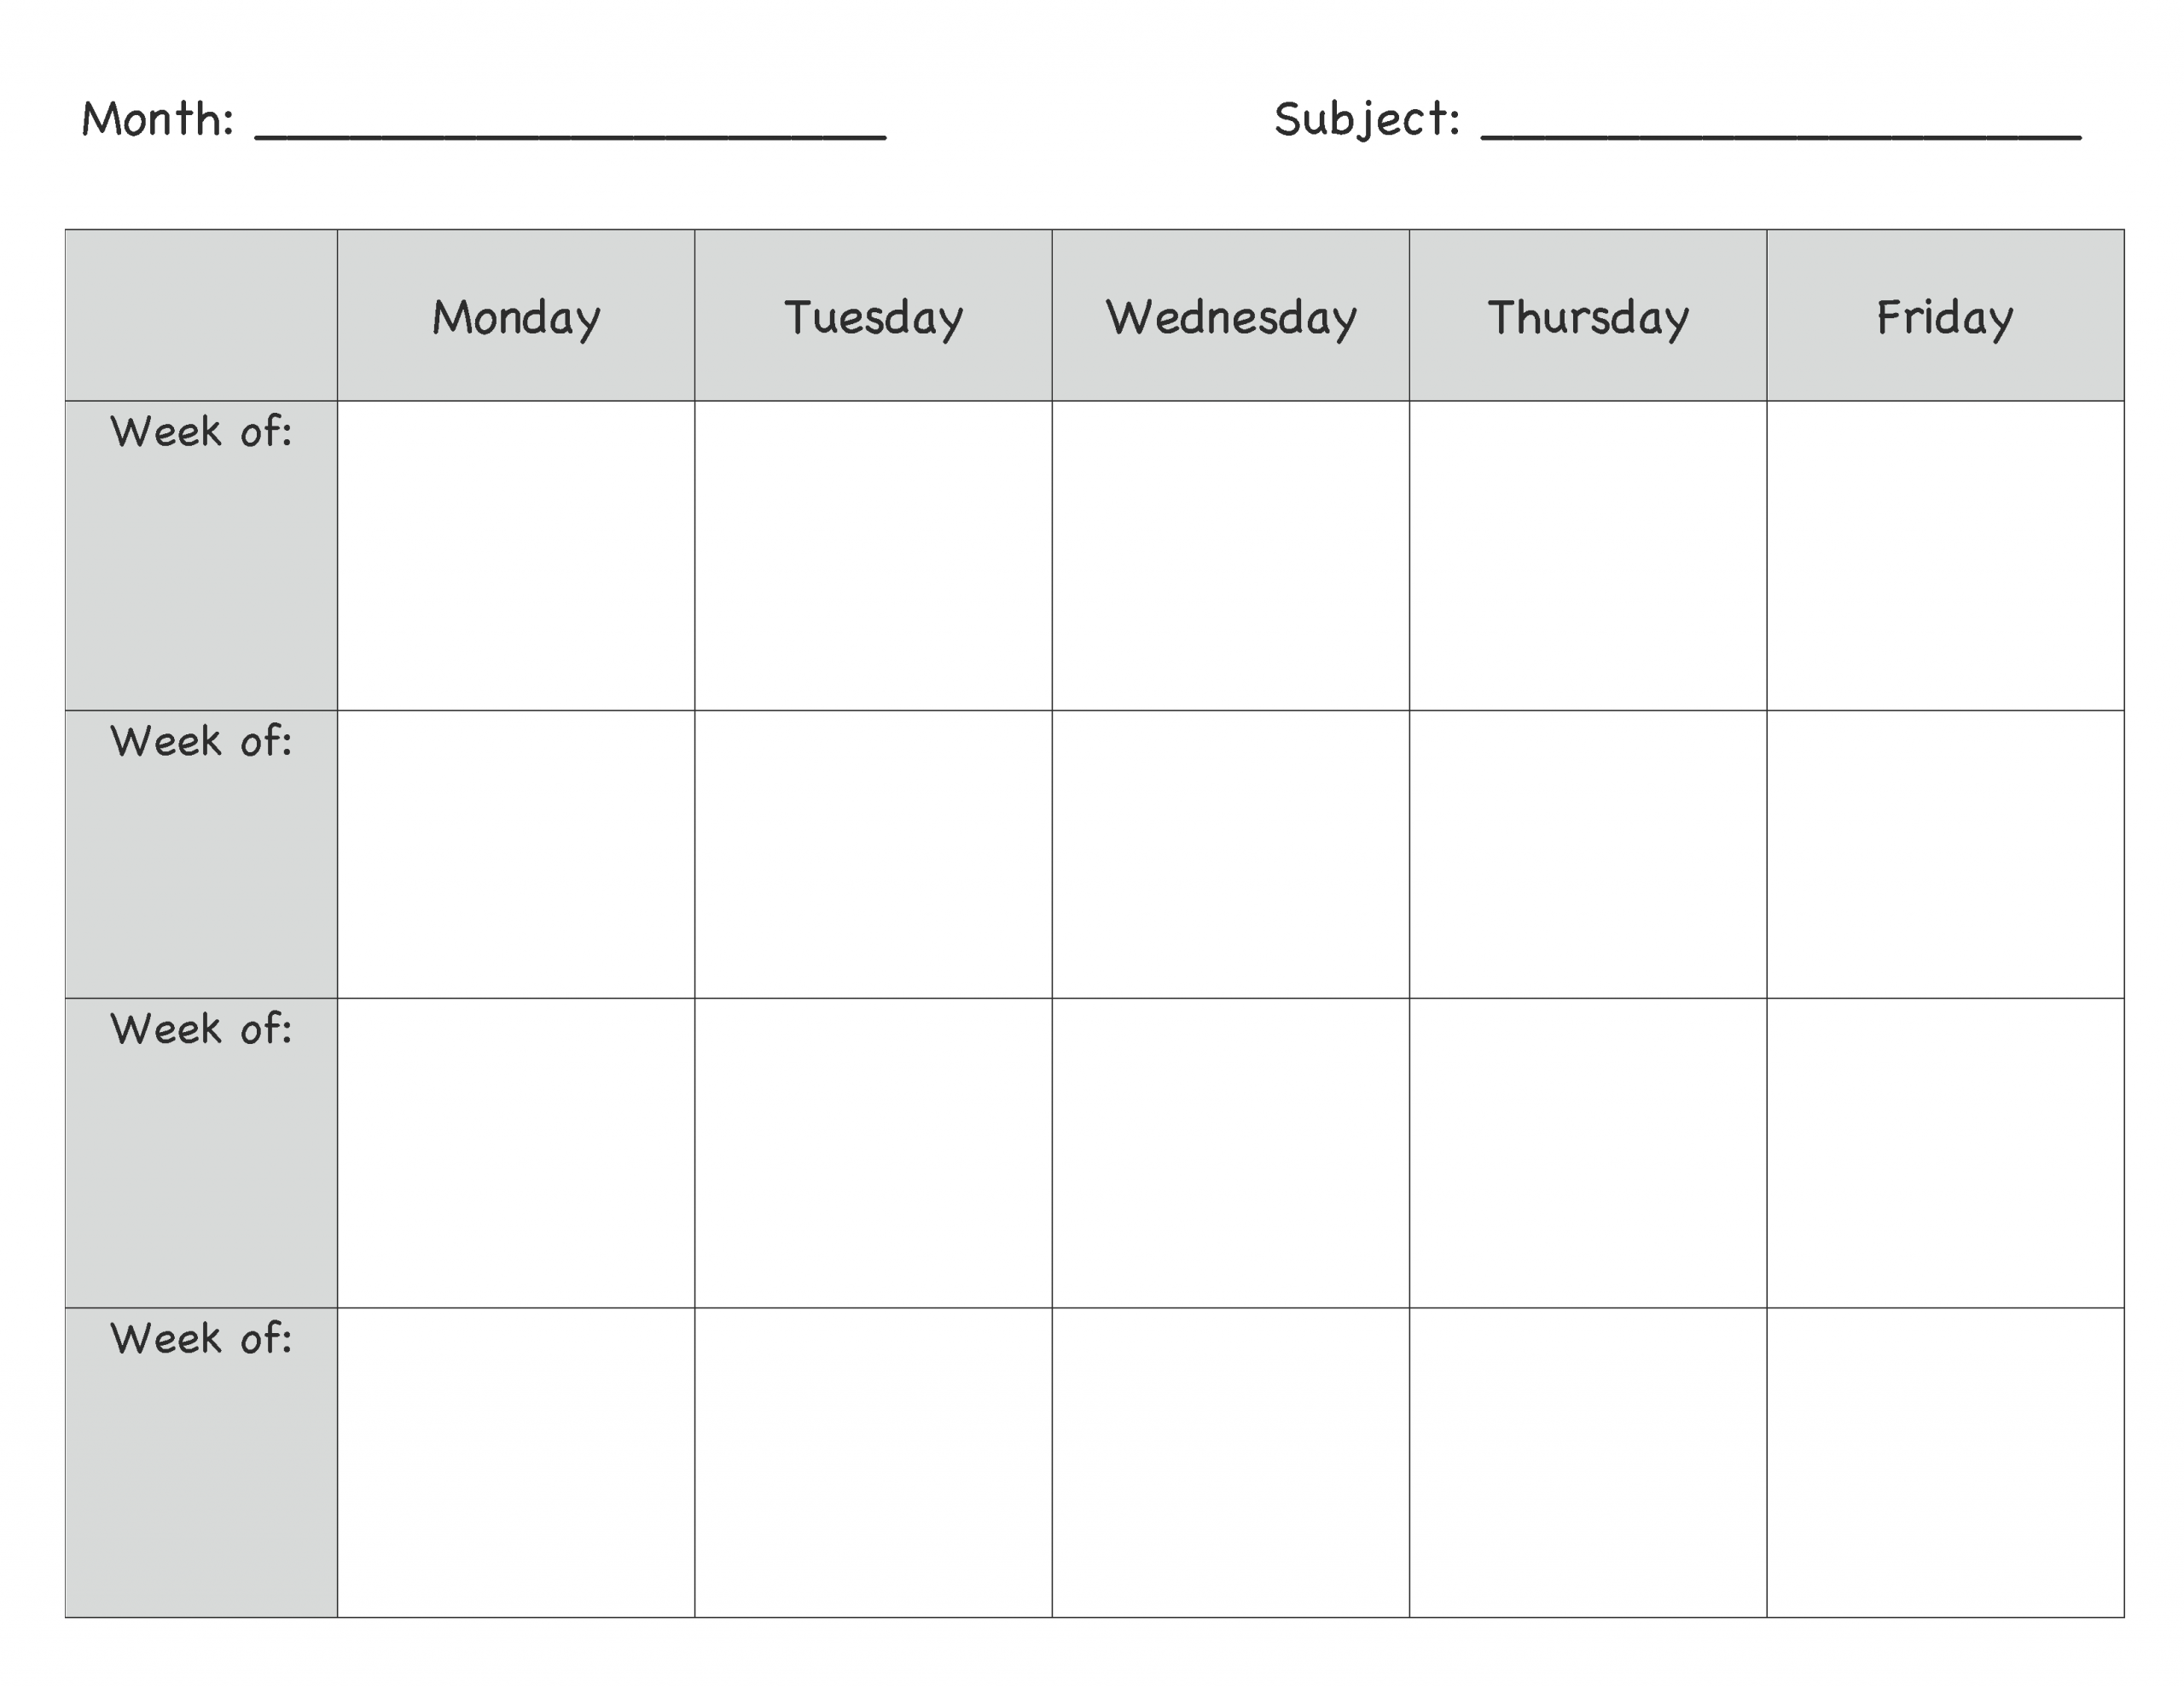 Monday Through Friday Planning Template   Calendar Monday To Friday Schedule Template With Four Weeks